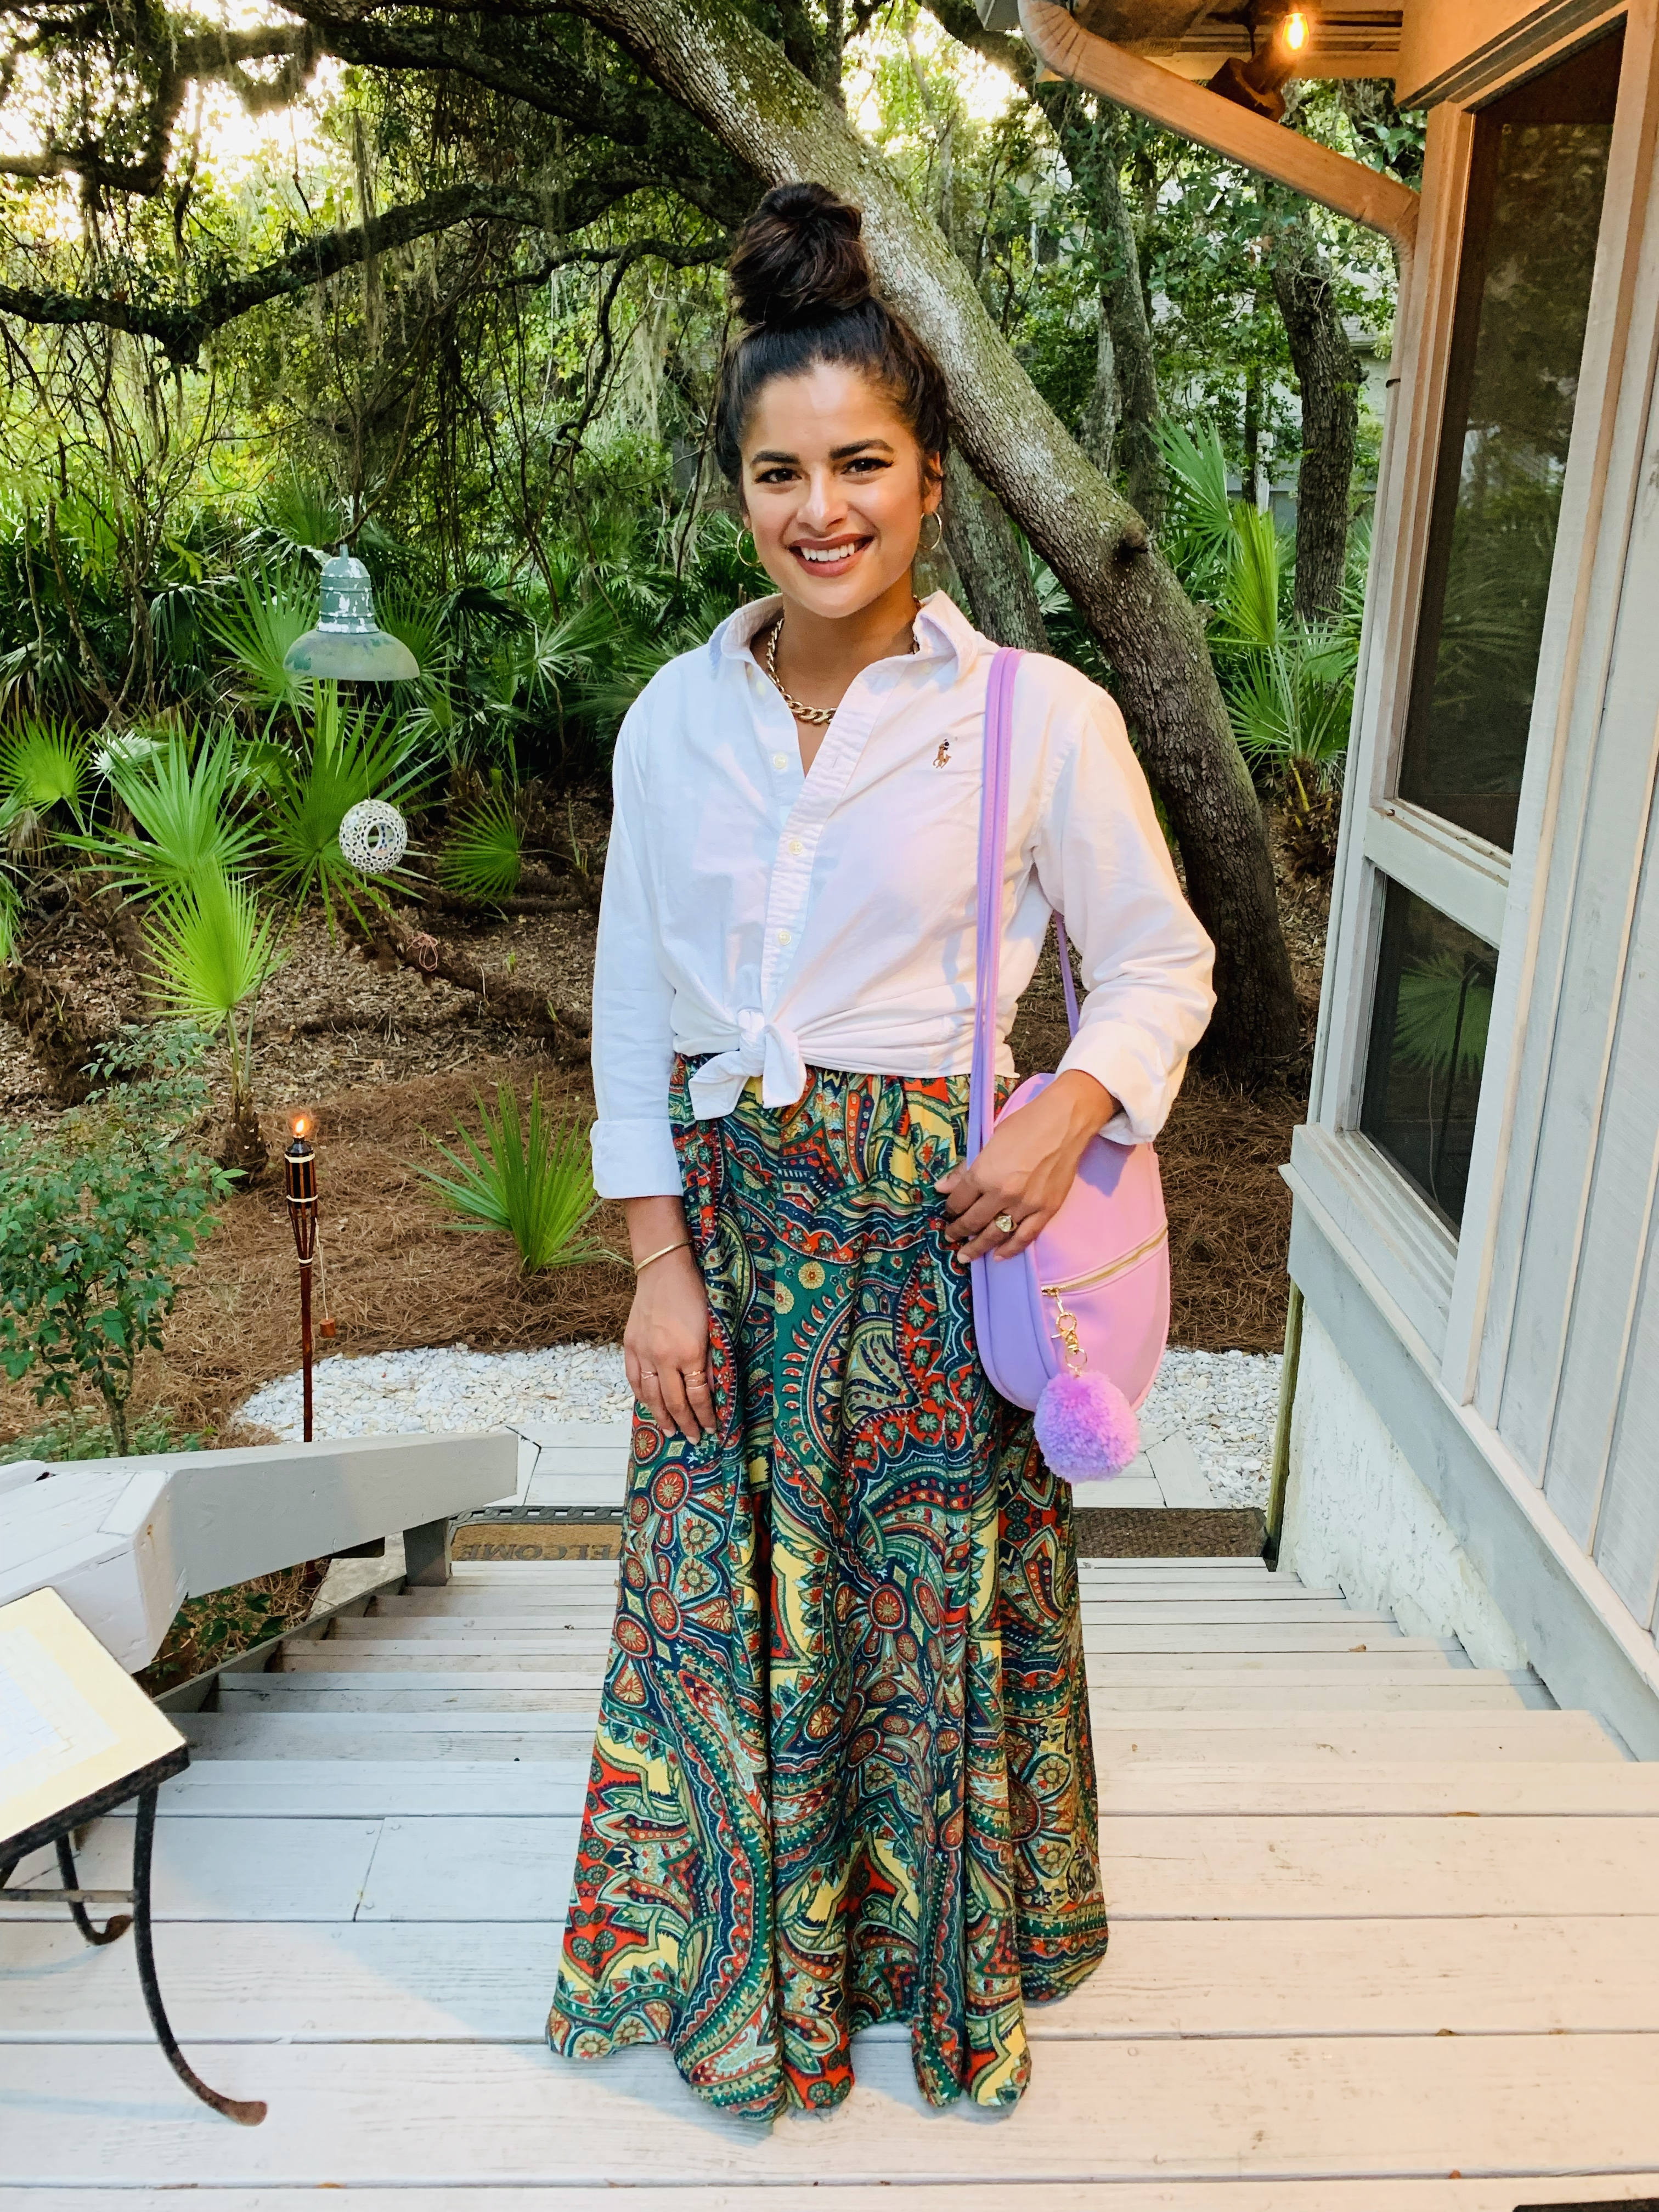 Priya the Blog, Nashville fashion blog, Nashville fashion blogger, Nashville style blog, Nashville style blogger, floor length skirt, how to style a floor length patterned skirt, white button-up, rehearsal dinner outfit, what to wear to a rehearsal dinner, beach dressy outfit, long skirt